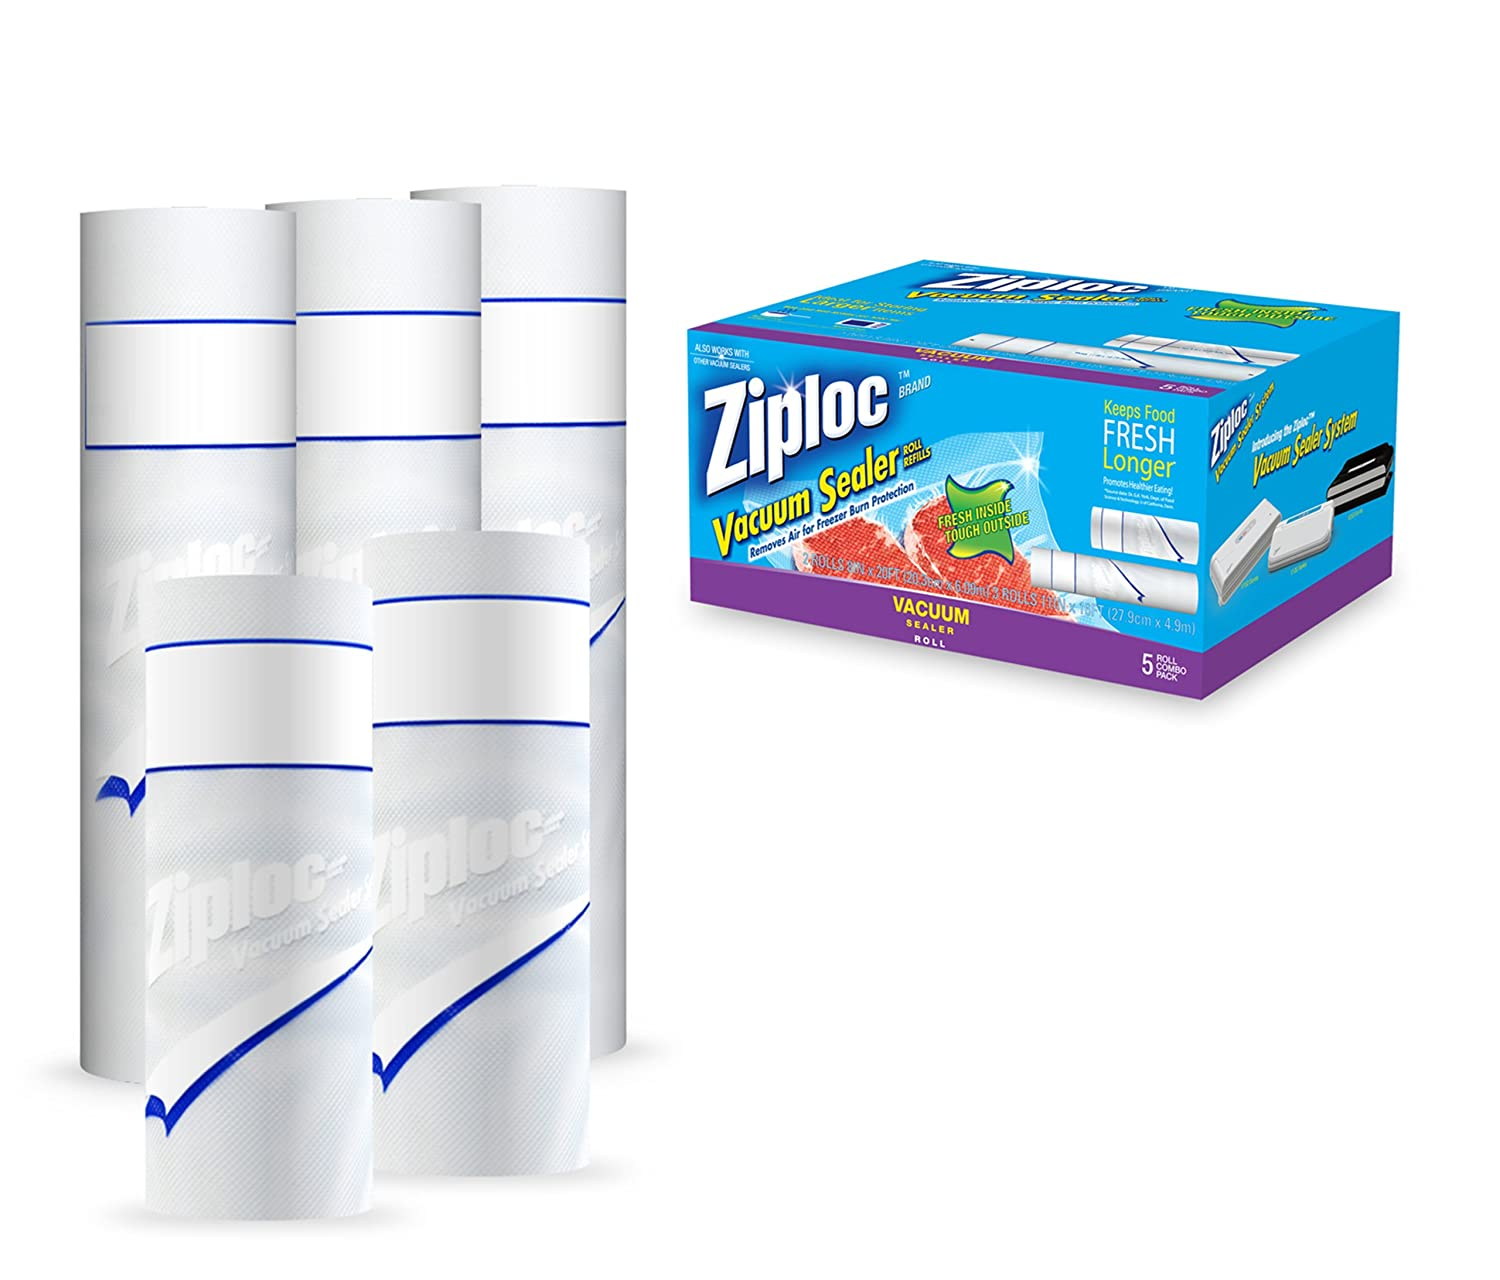 Ziploc ZL1COMBOPK3 Vacuum Seal Combo Pack with Two 8-Inch x 20-Feet Rolls and Three 11-Inch x 16-Feet Rolls